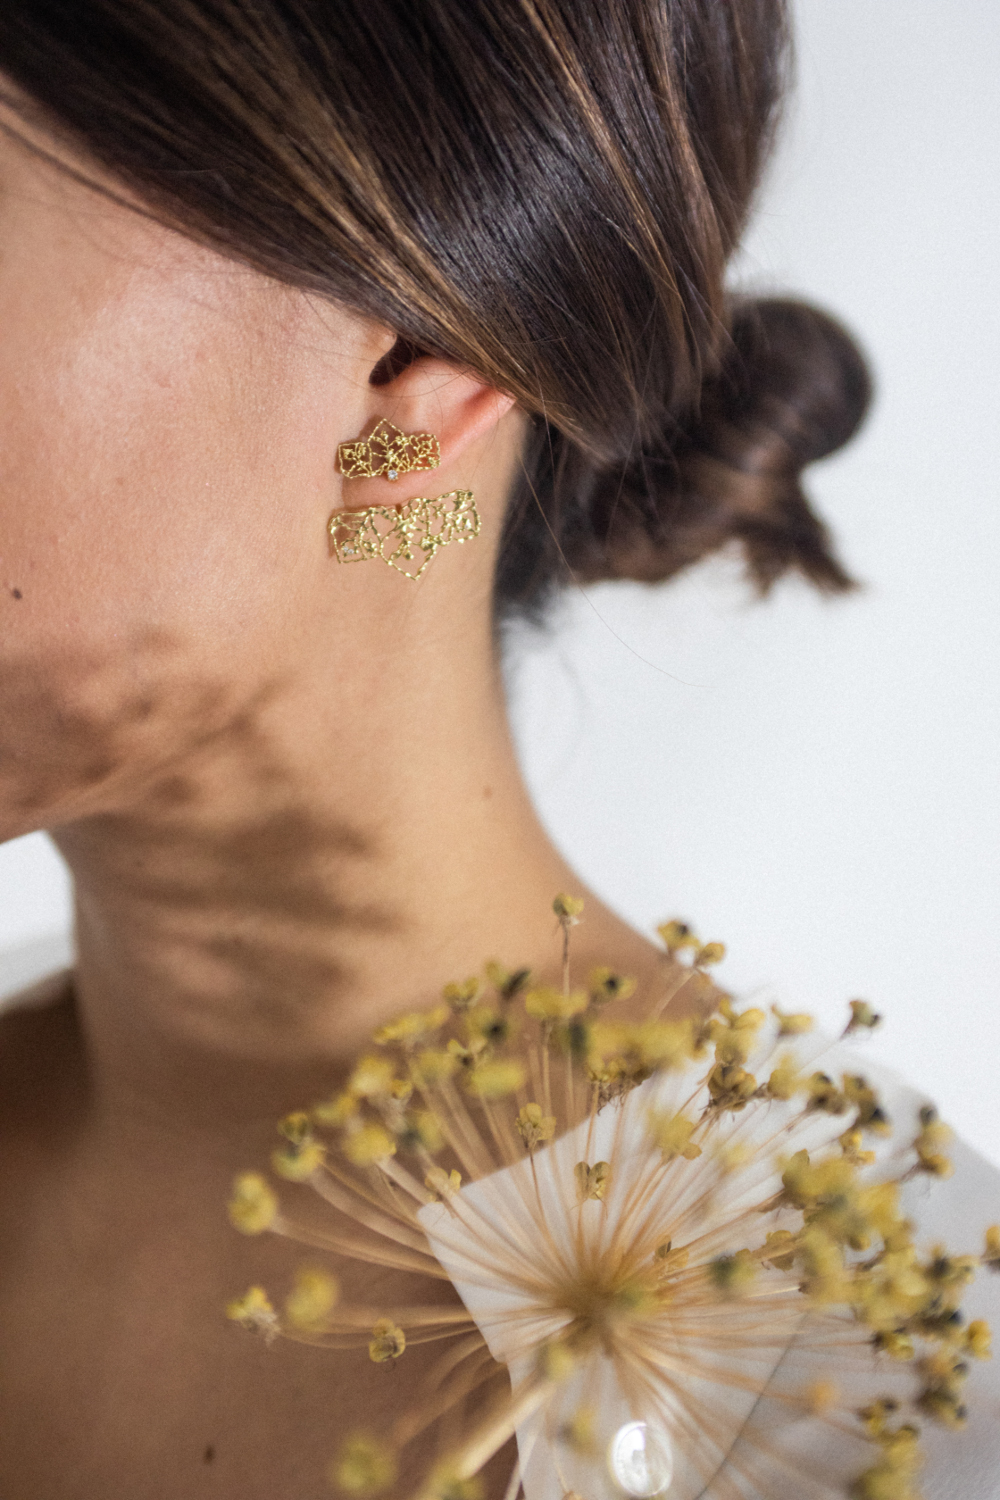 Natalie Perry Jewellery, 18ct gold filigree ear jackets